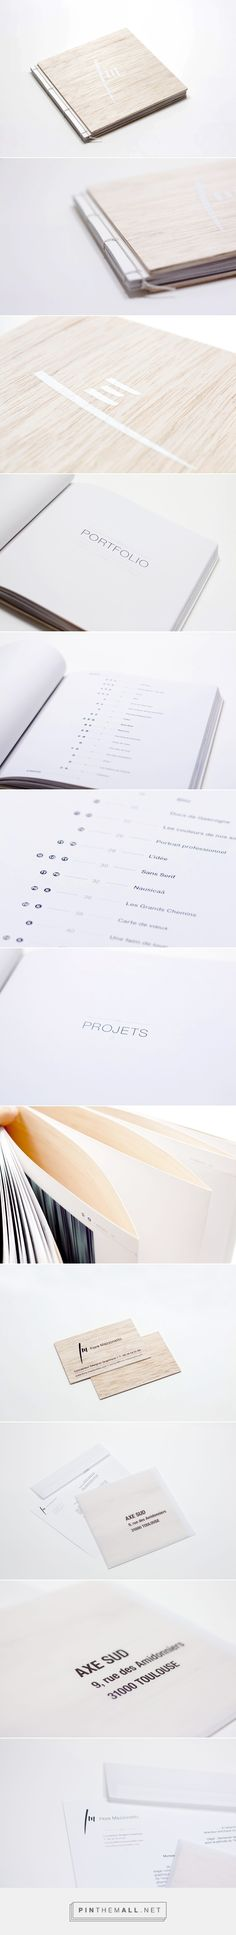 Self promotion portfolio by Flore Mazzonetto